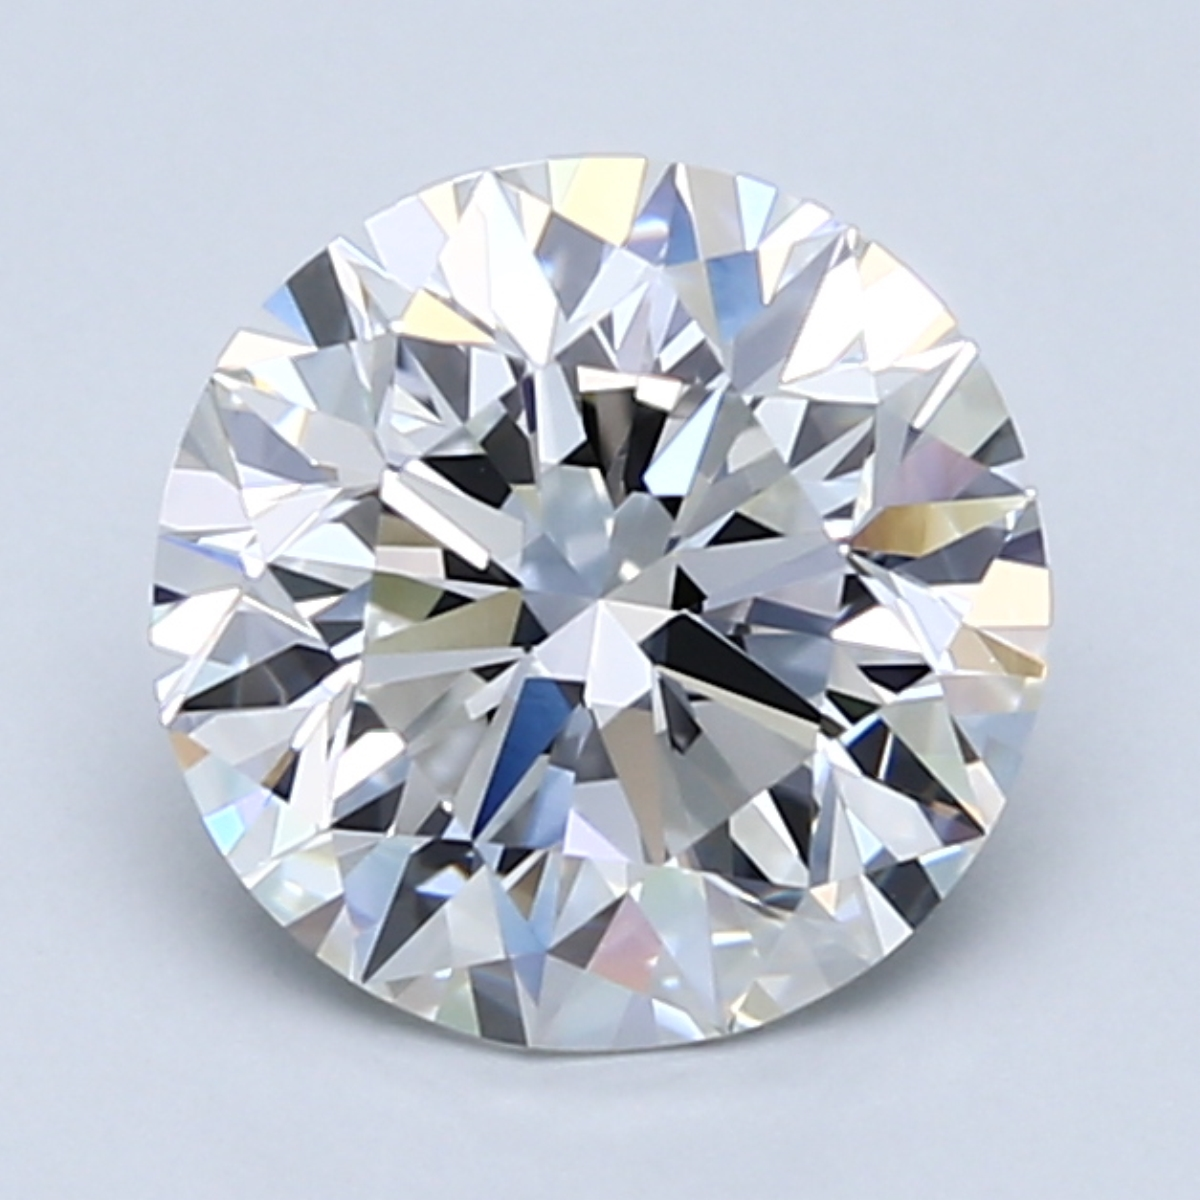 2 Carat F Color Diamond